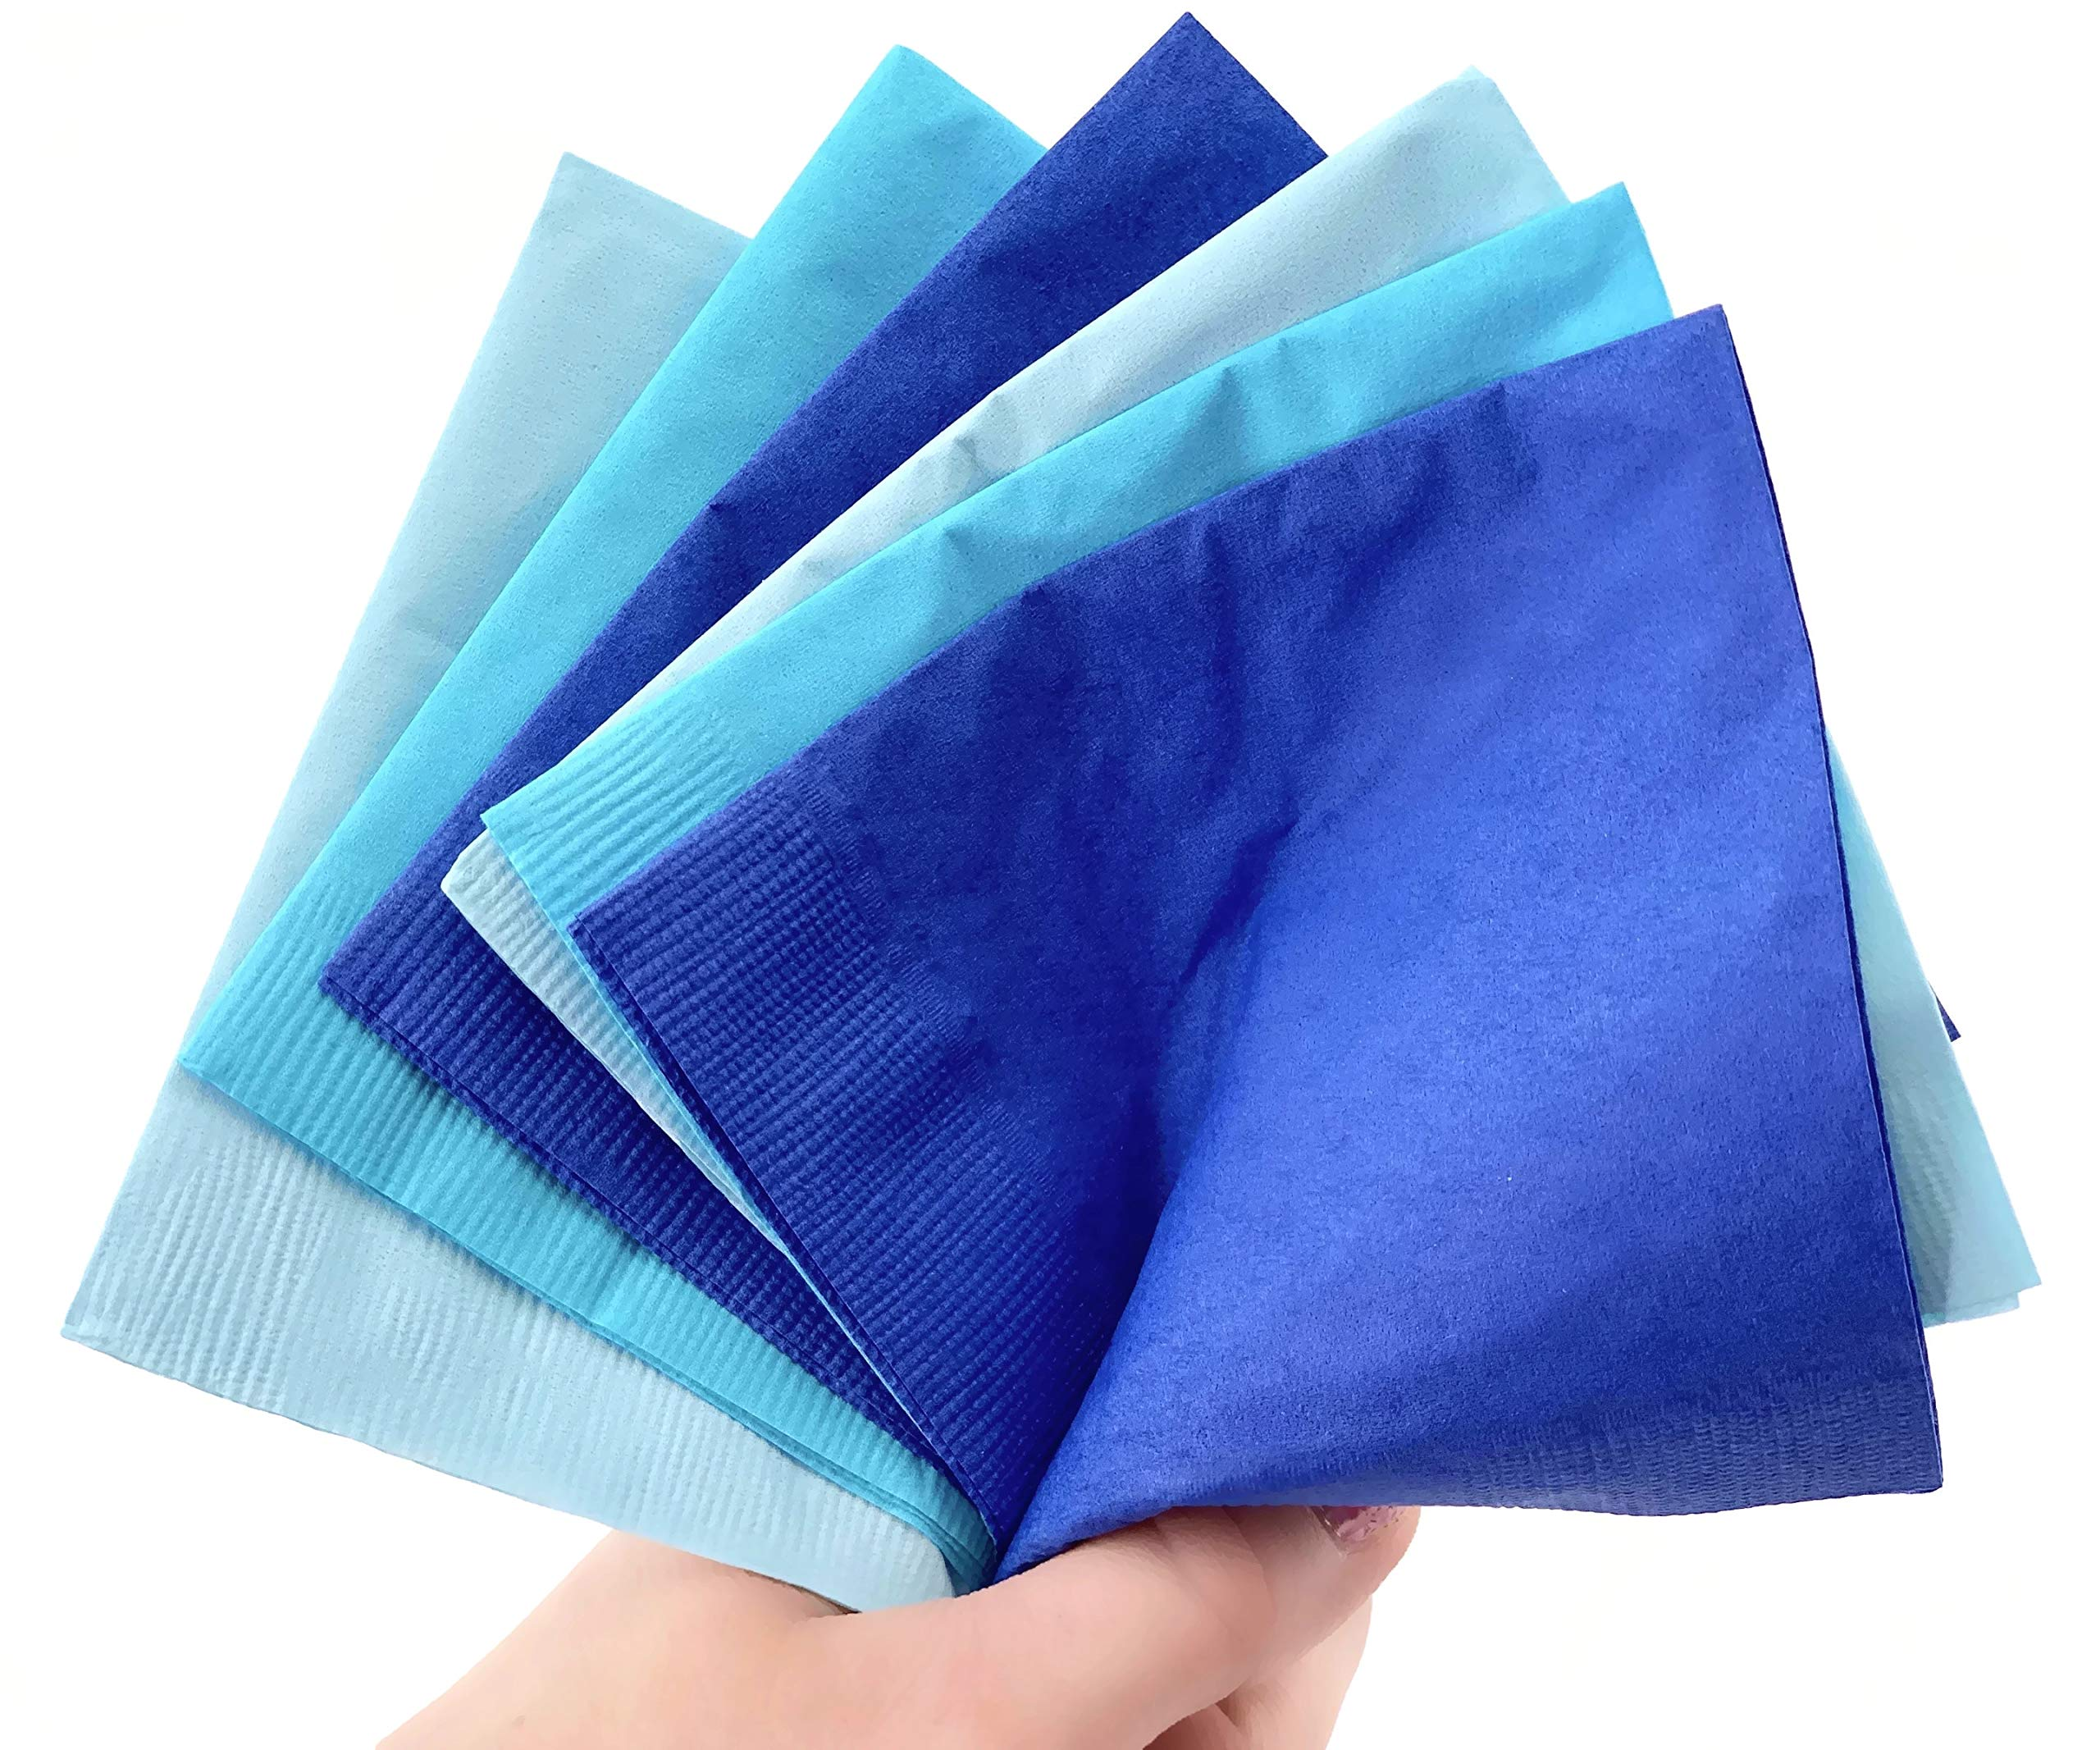 Blue Beverage Napkins - 50ct Boy Baby Shower 1st 2nd Birthday Party Supplies by Stesha Party